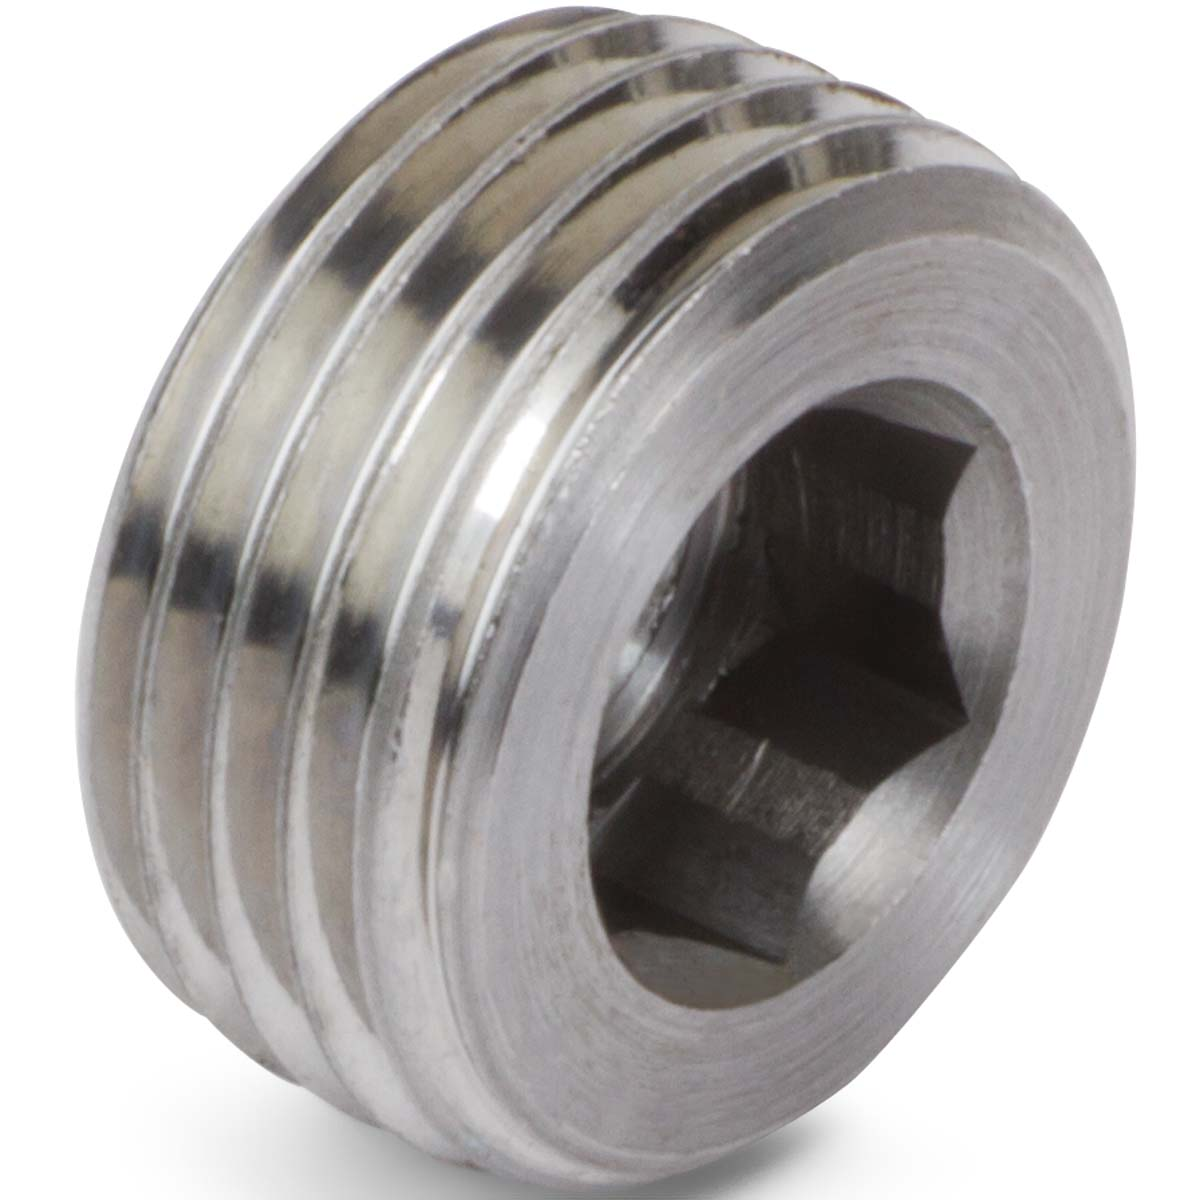 Bspt countersunk plug kimball midwest